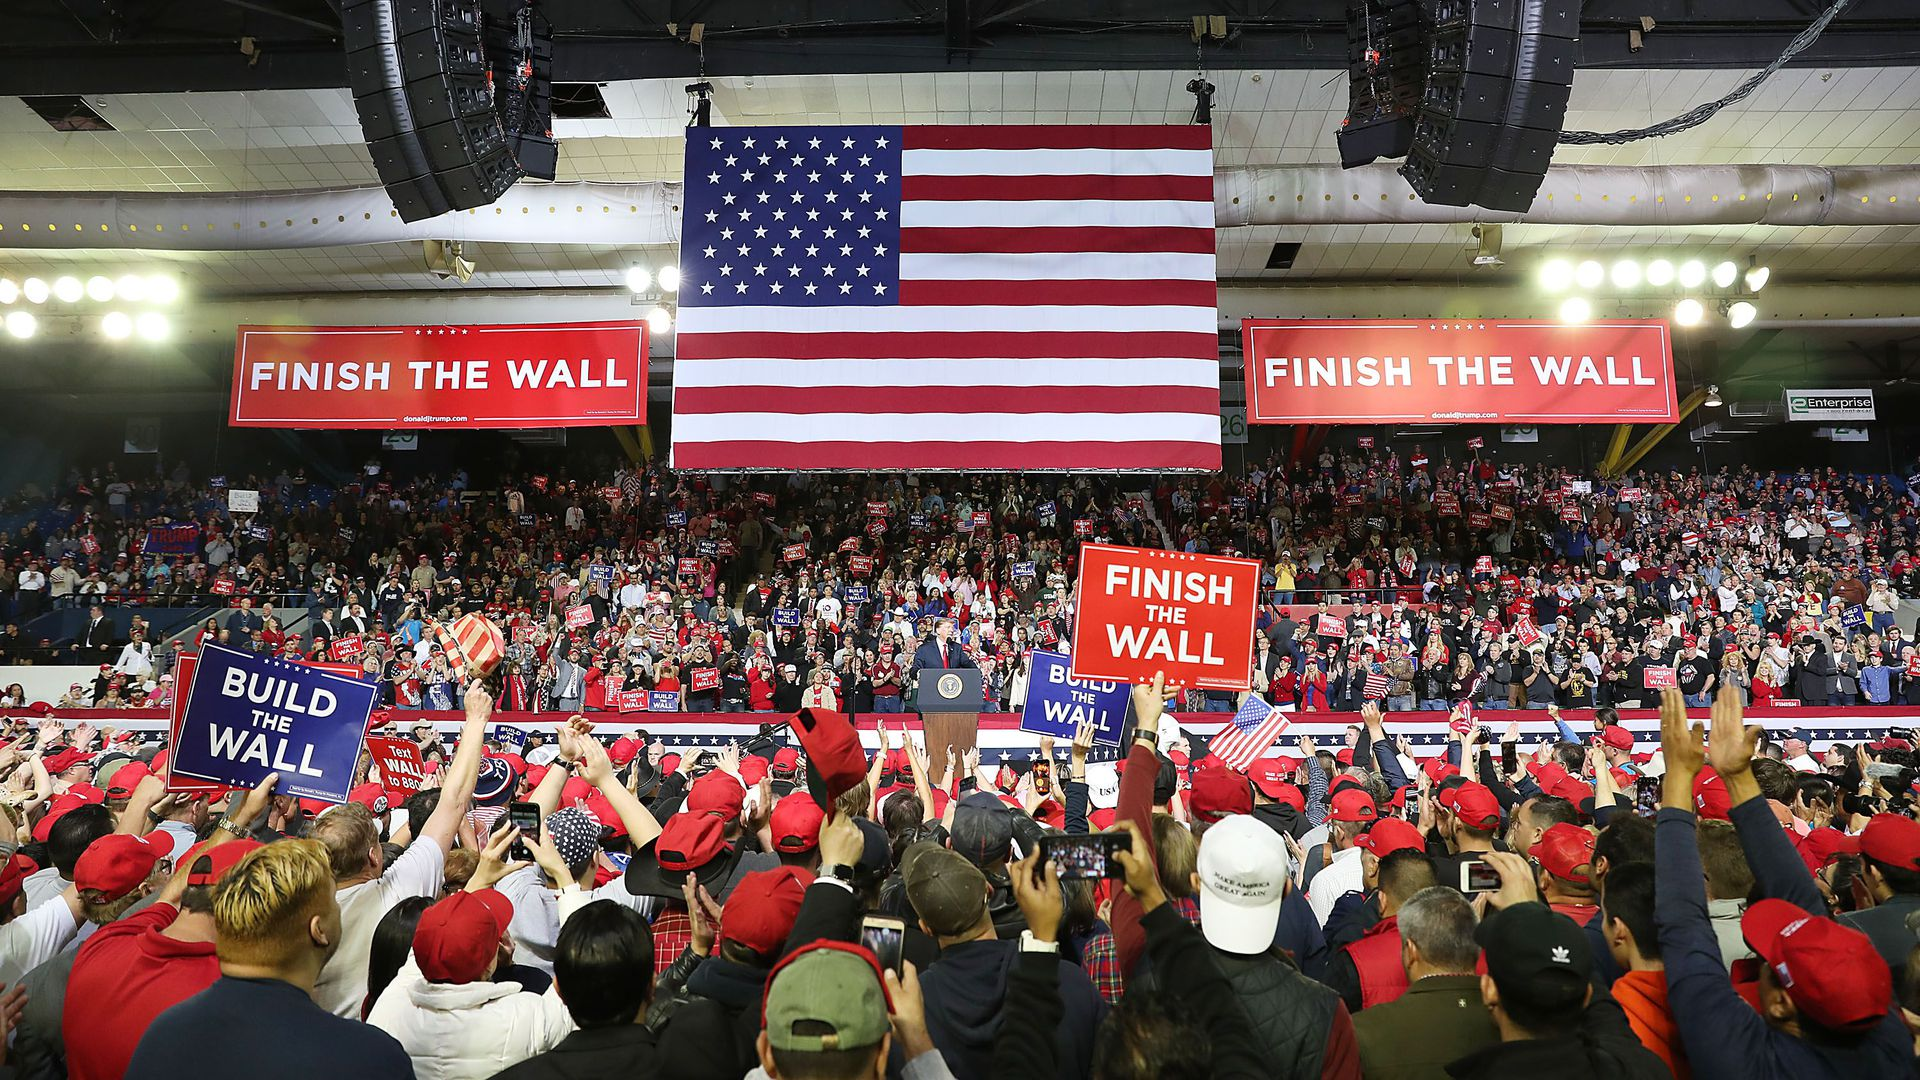 Trump's 2020 campaign manager claims 50% of signups for his El Paso rally were Democrats